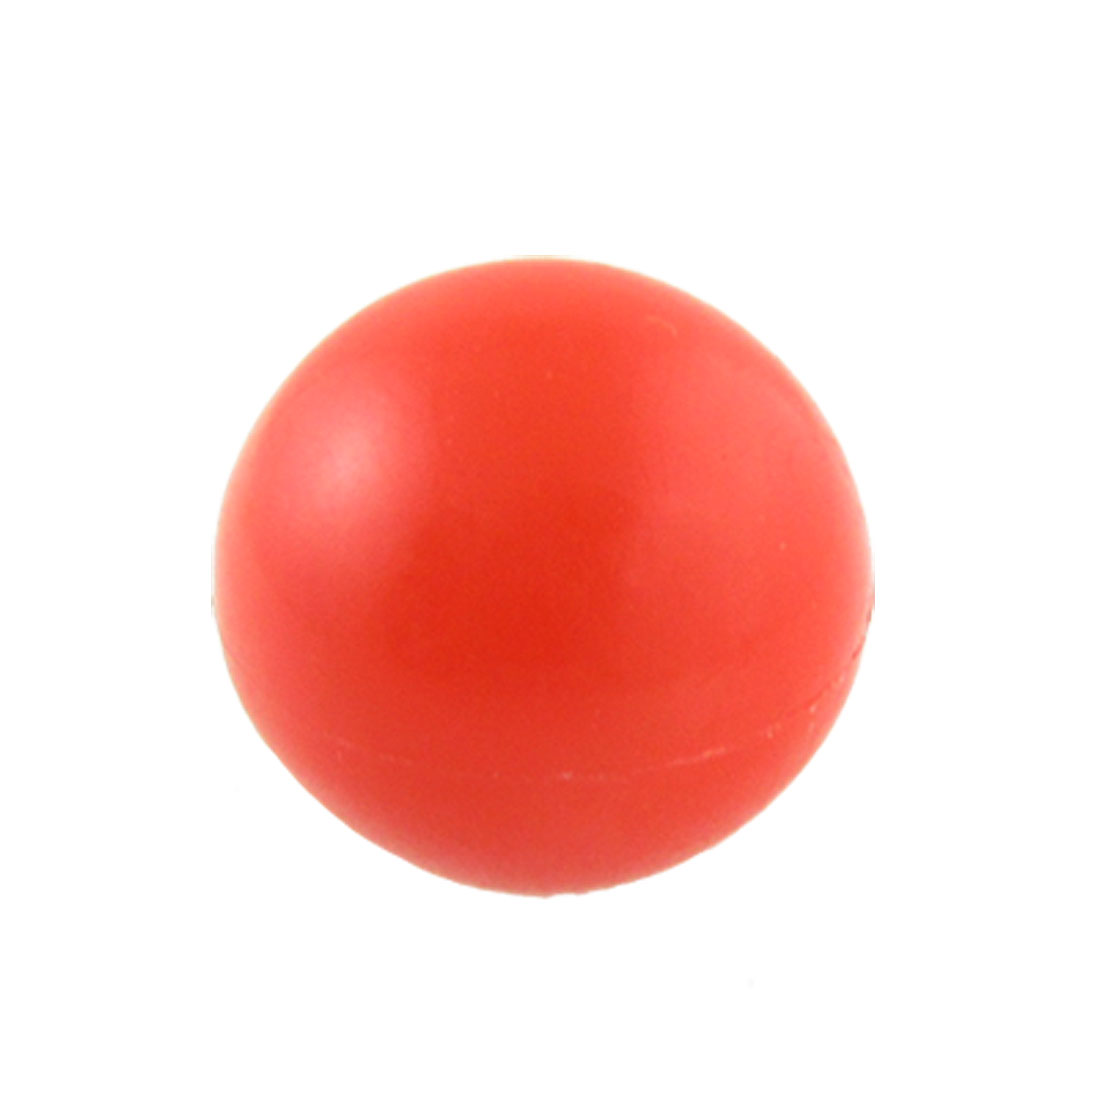 Solid Red Round Plastic 32mm Diameter Ball Lever Knob